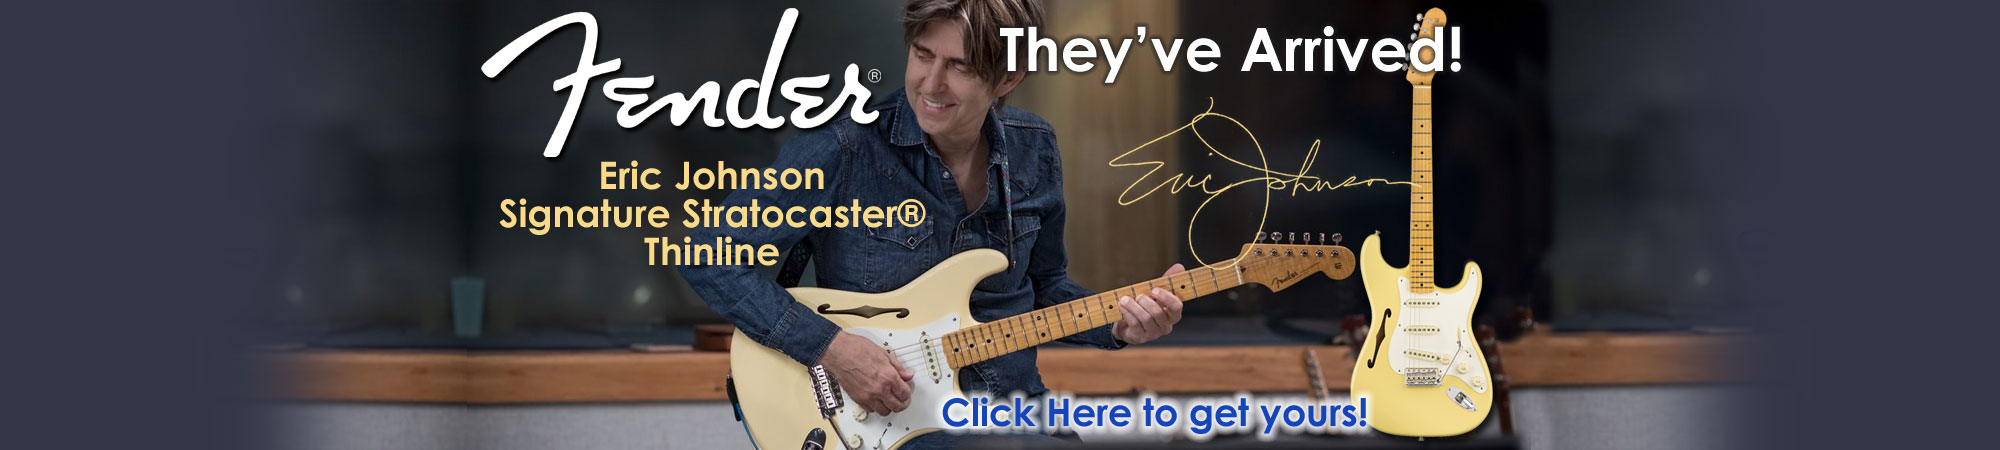 Fender Eric Johnson Signature Strat Thinline Preorder